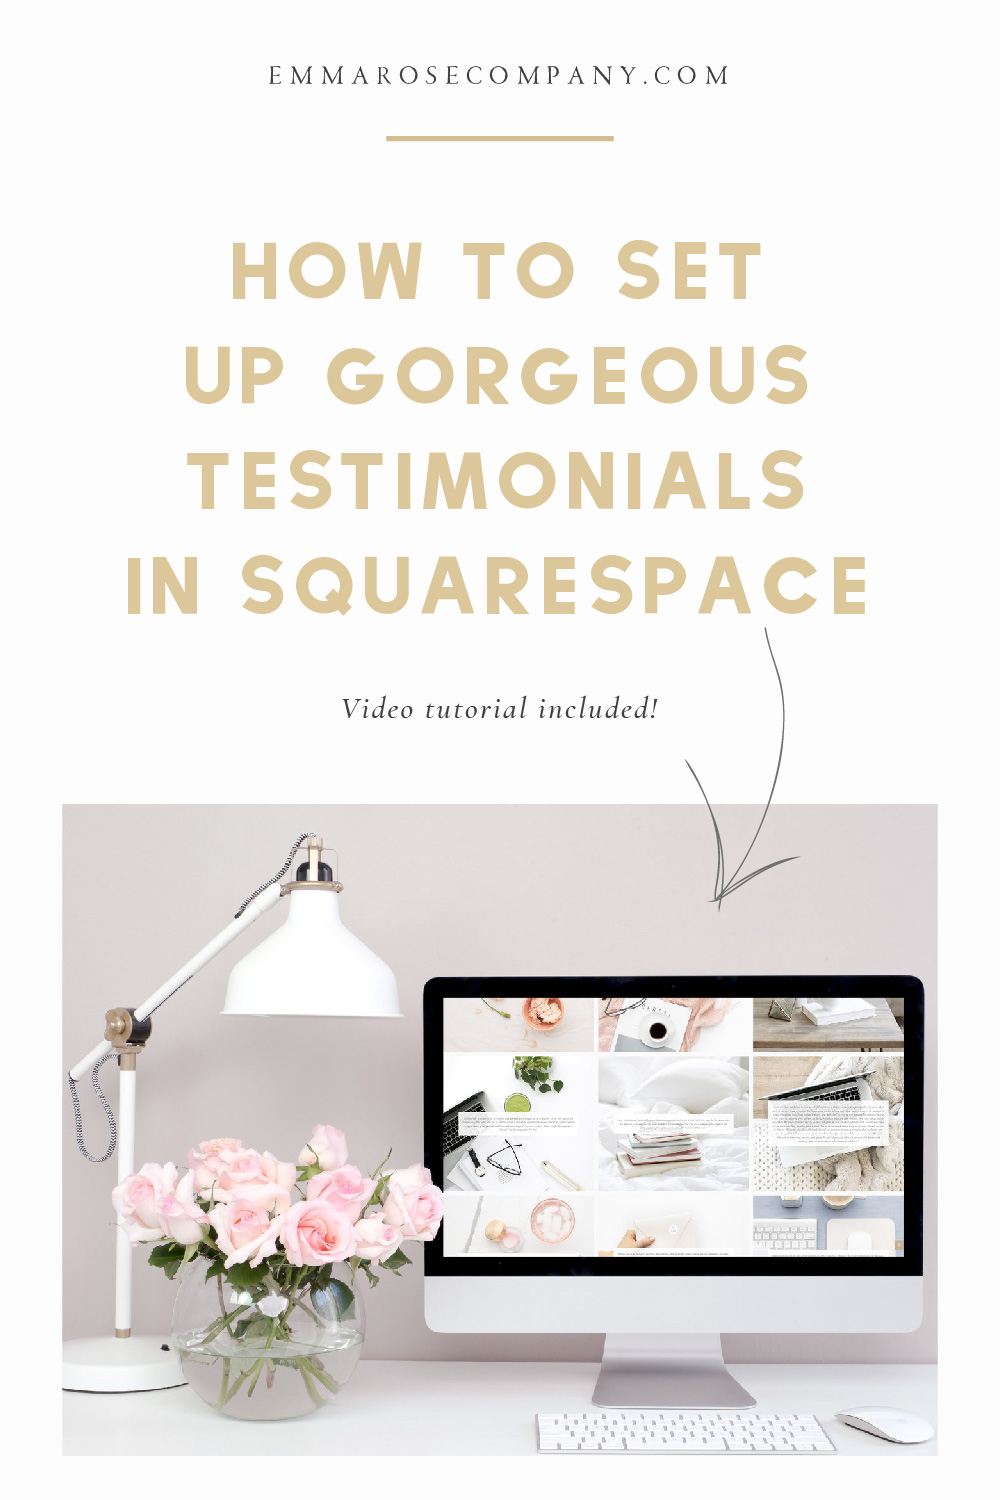 How to Set Up Gorgeous Split Testimonials with an index gallery Page in Squarespace | Squarespace Hack | Tips and Tricks Emma Rose Company | Squarespace Website Designer for Photographers.jpg